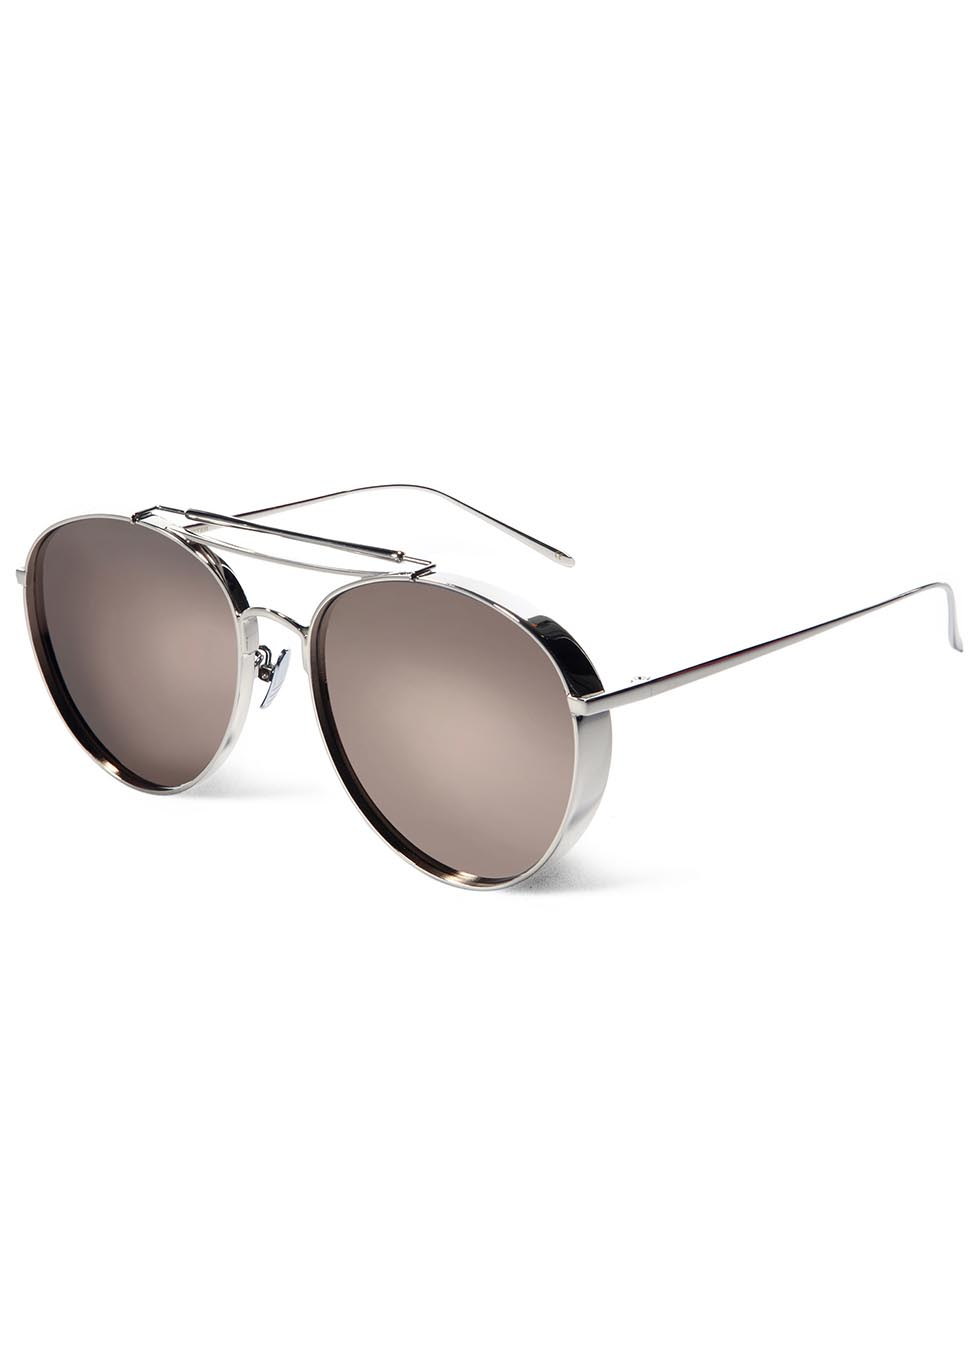 137f6e168537 Gentle Monster Big Bully Mirrored Aviator-style Sunglasses in ...